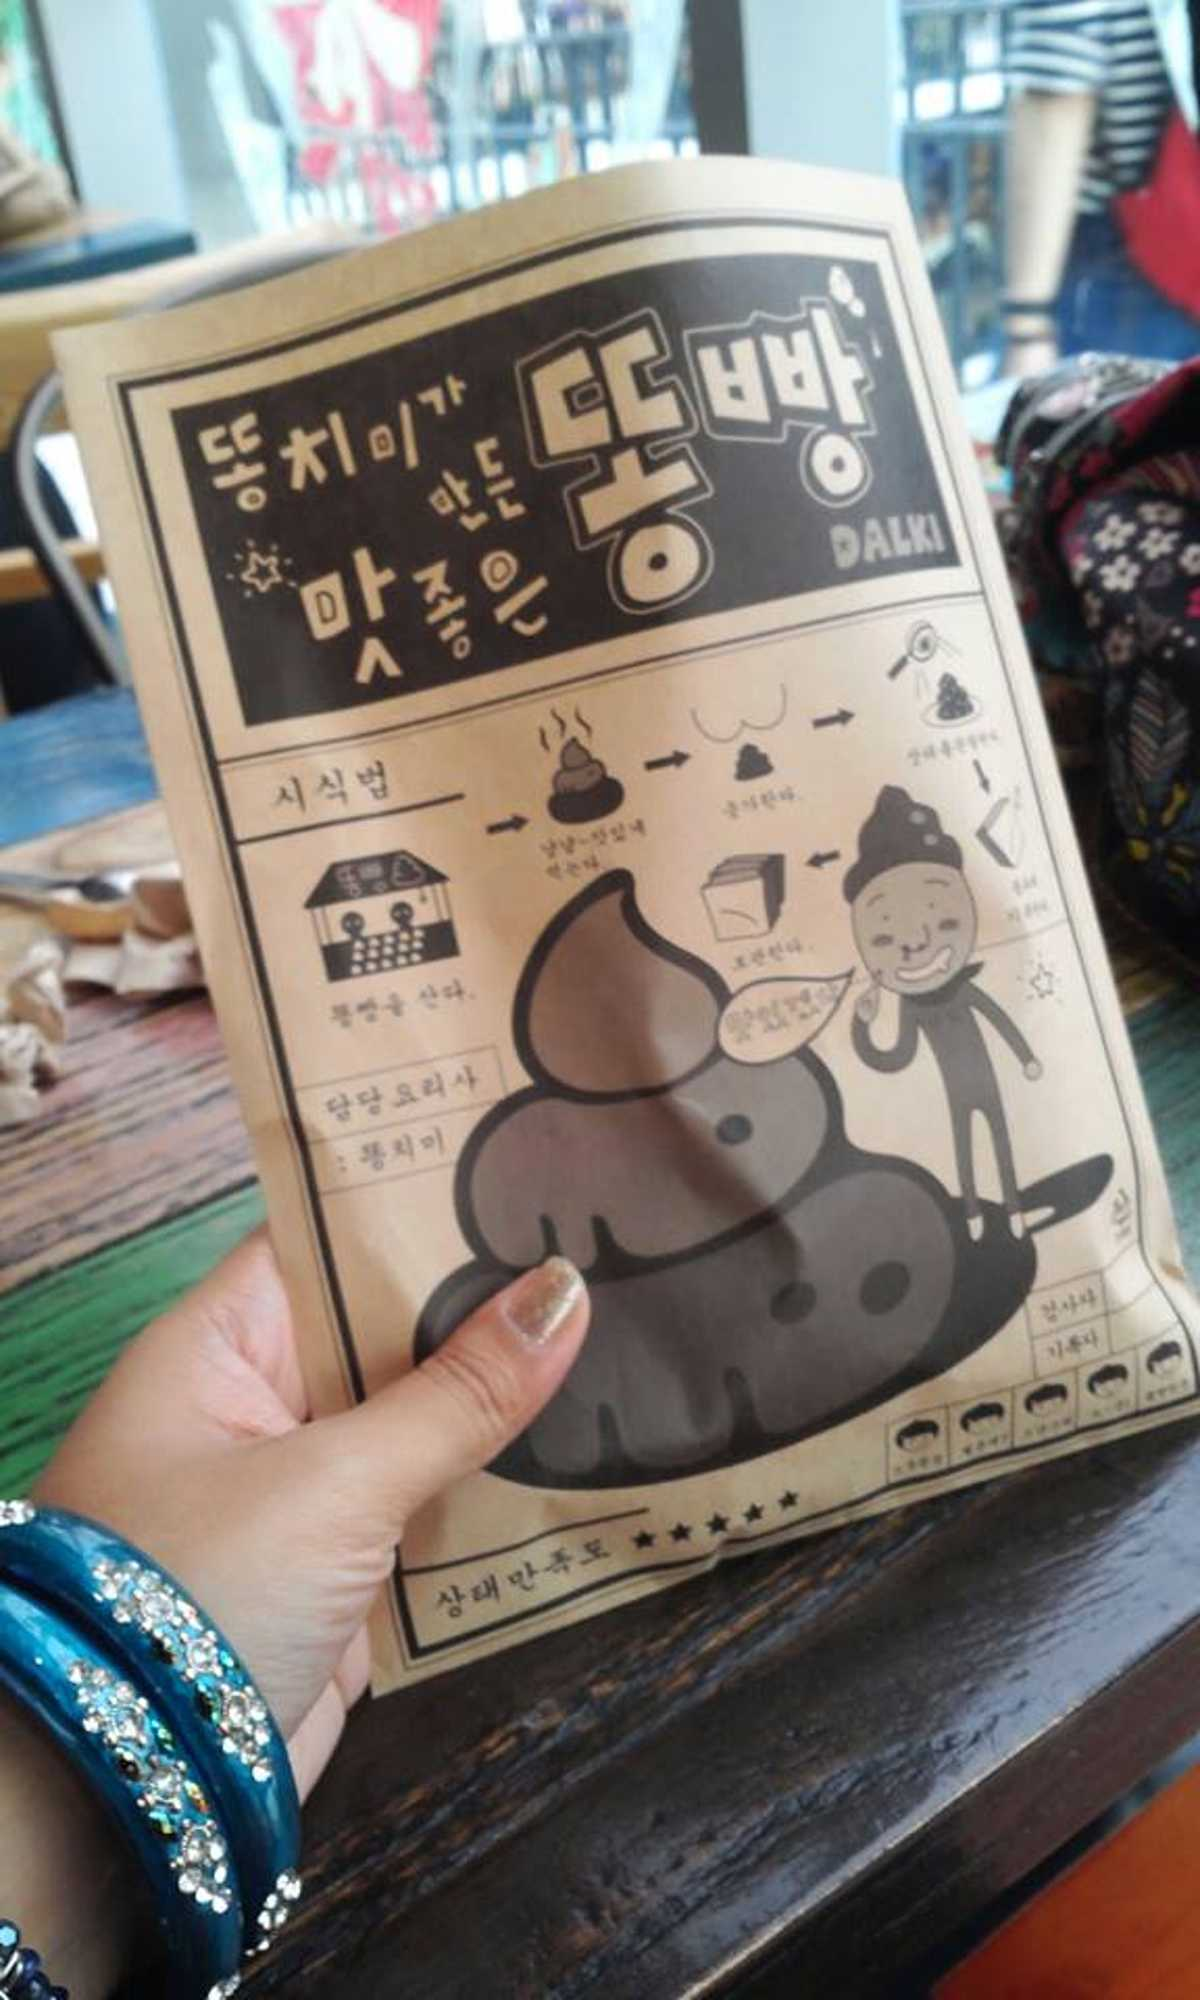 Elaborate packaging with illustrations of Ttong